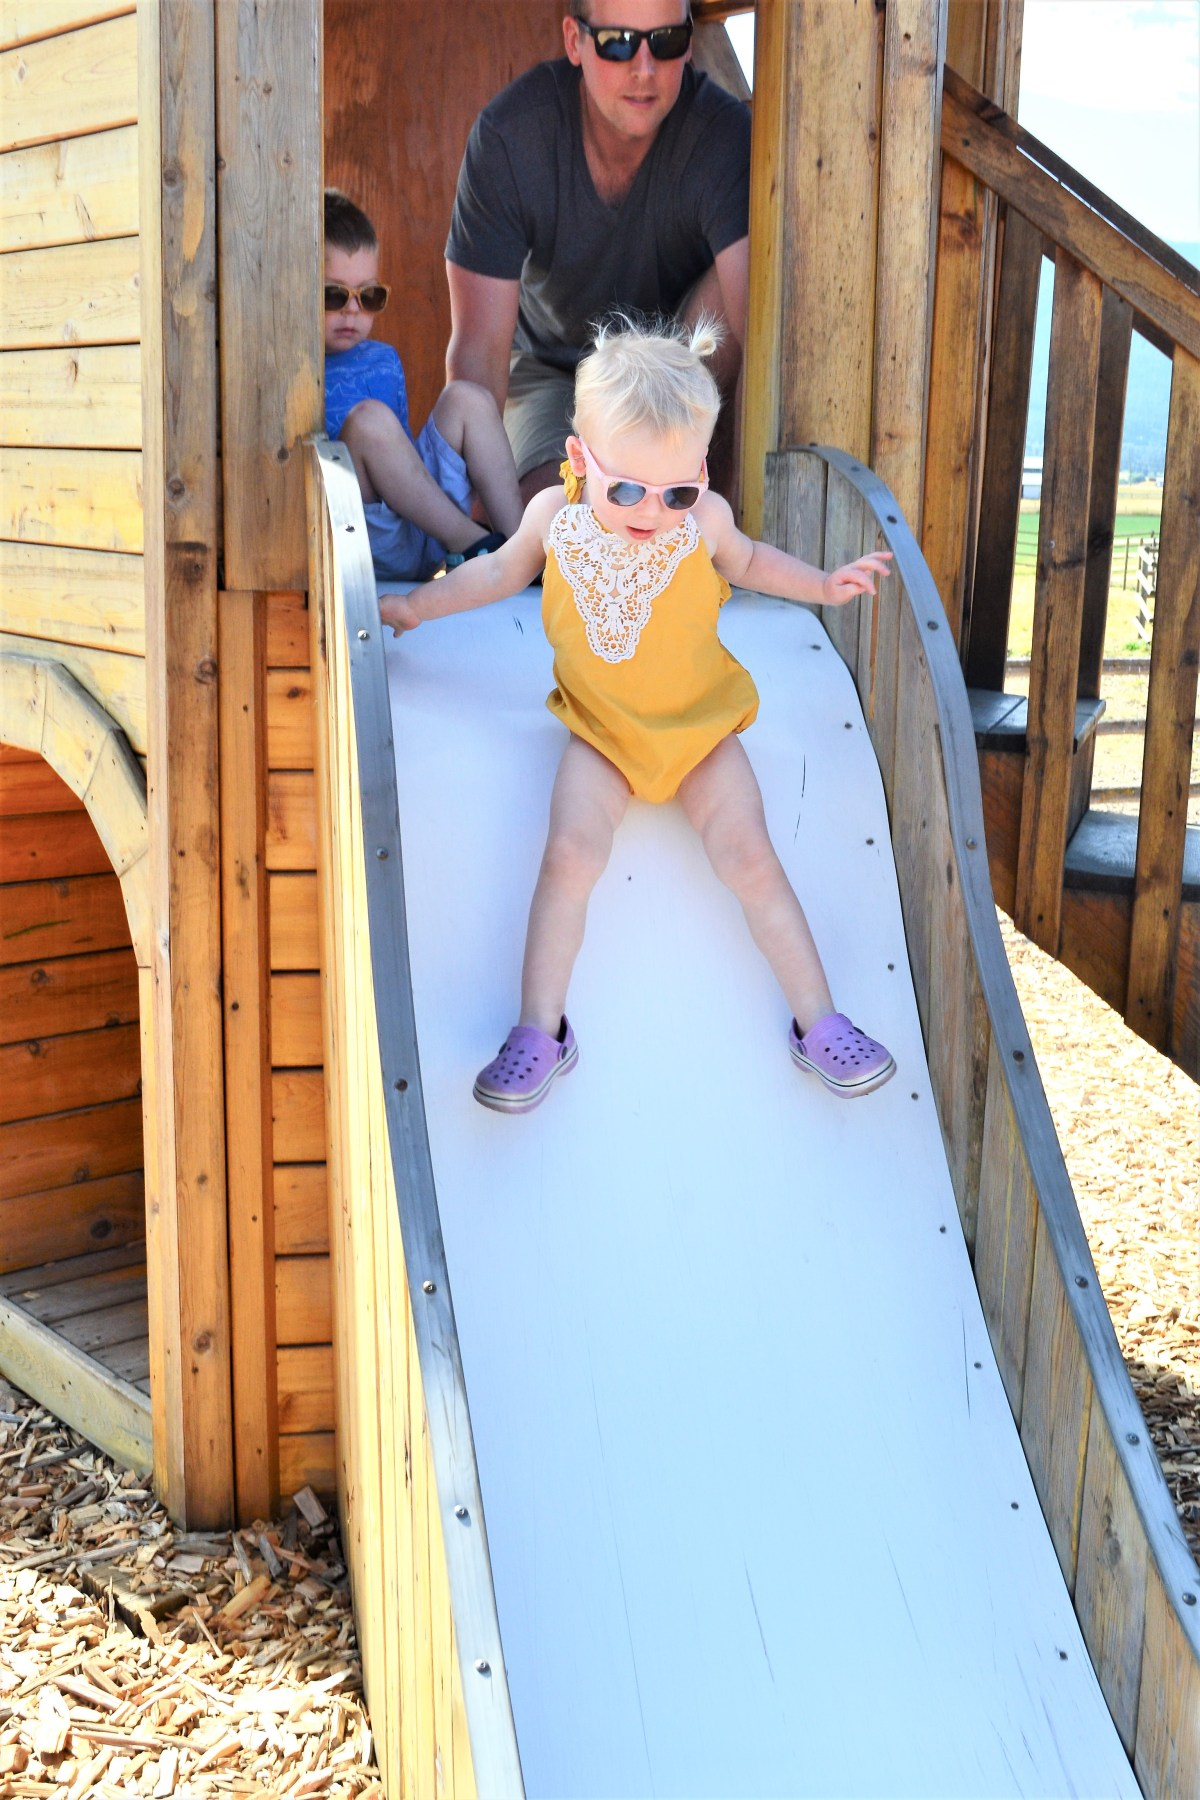 The Log Barn Adventure - slide